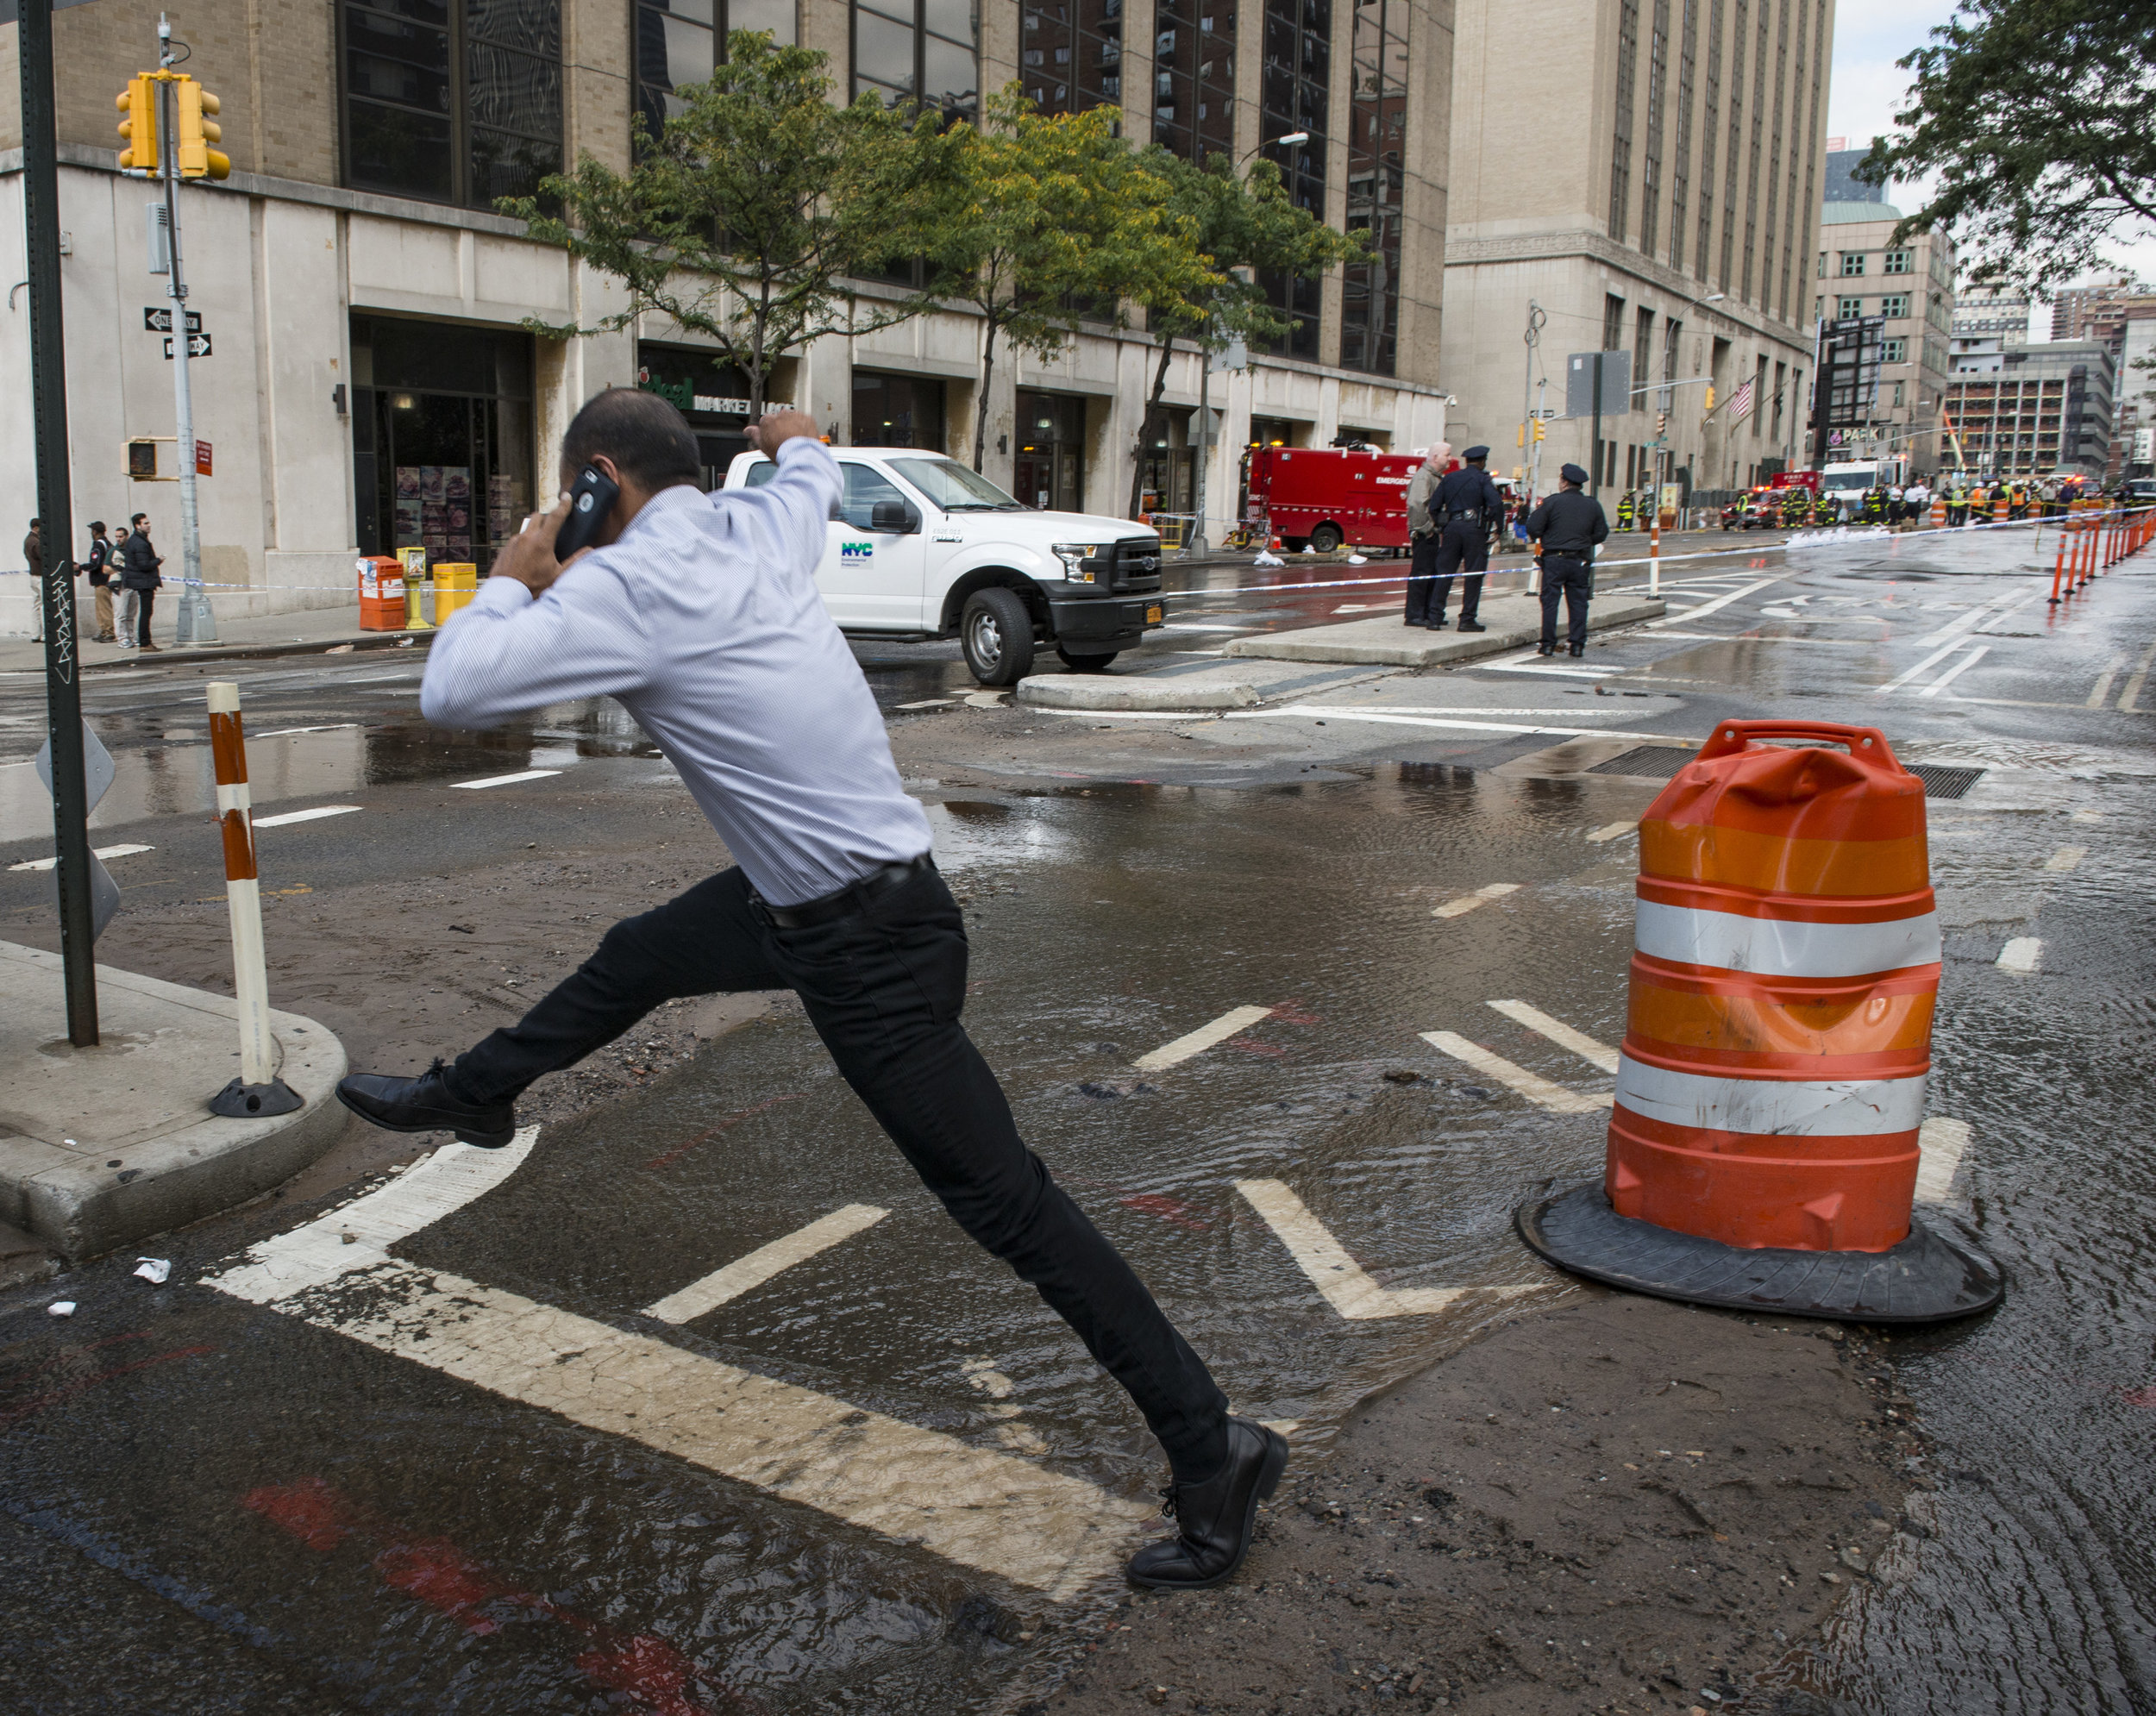 Exhibit AwardAnthony Demundo/Daily News  PUDDLE JUMPERA pedestrian jumps to get across the flowing water as emergency responders work the scene of a water main break at the corner of 9th Avenue and West 29th Street in Manhattan on Wednesday, October 12, 2016.